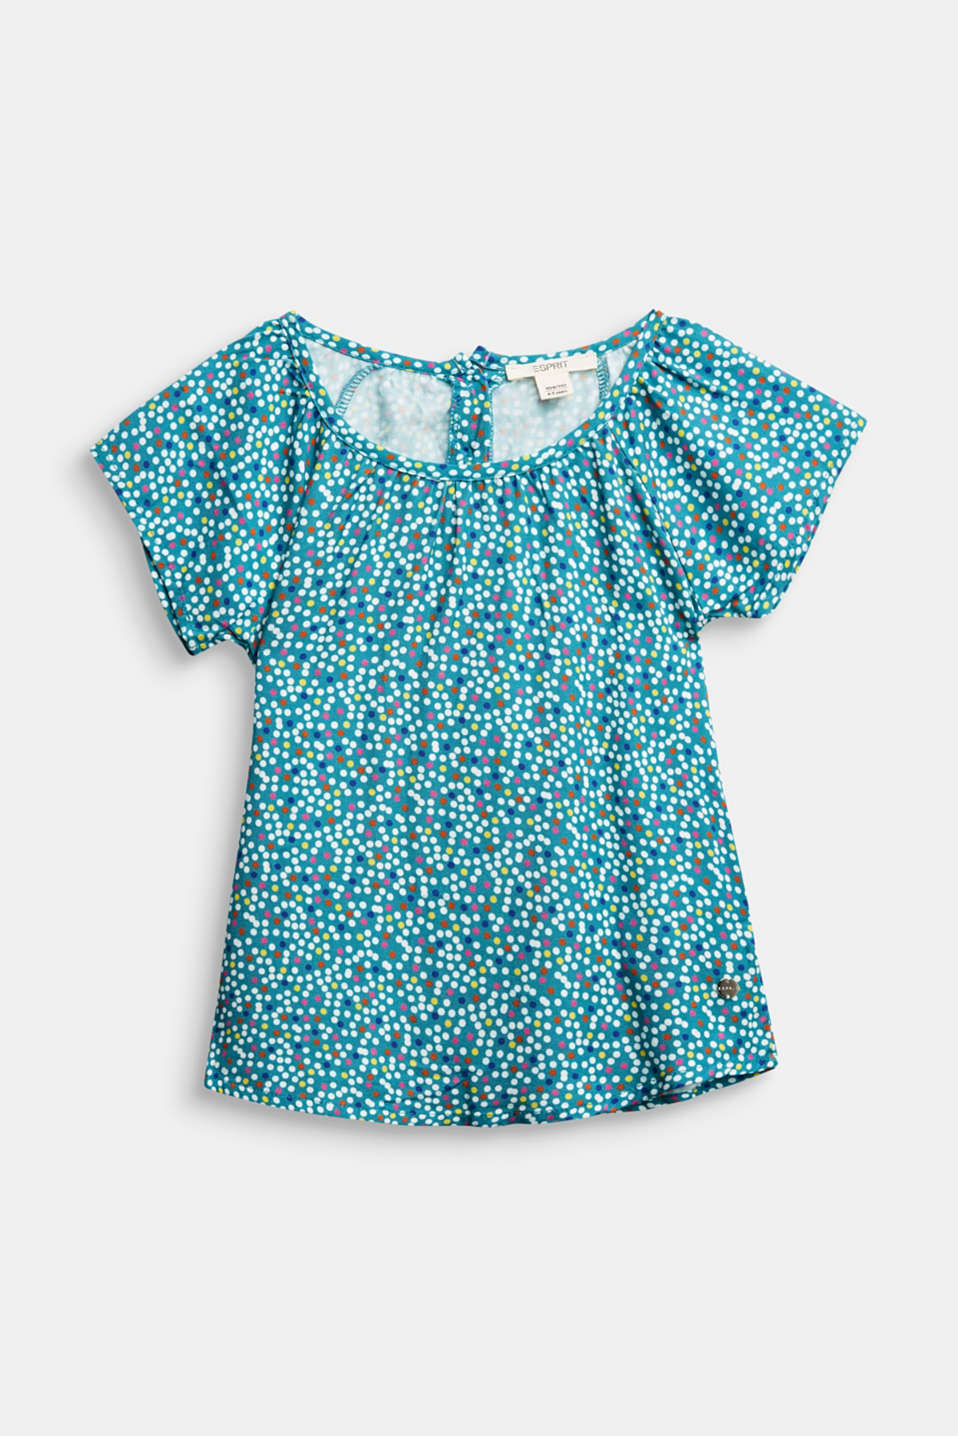 Esprit - Blouse top with a polka dot print